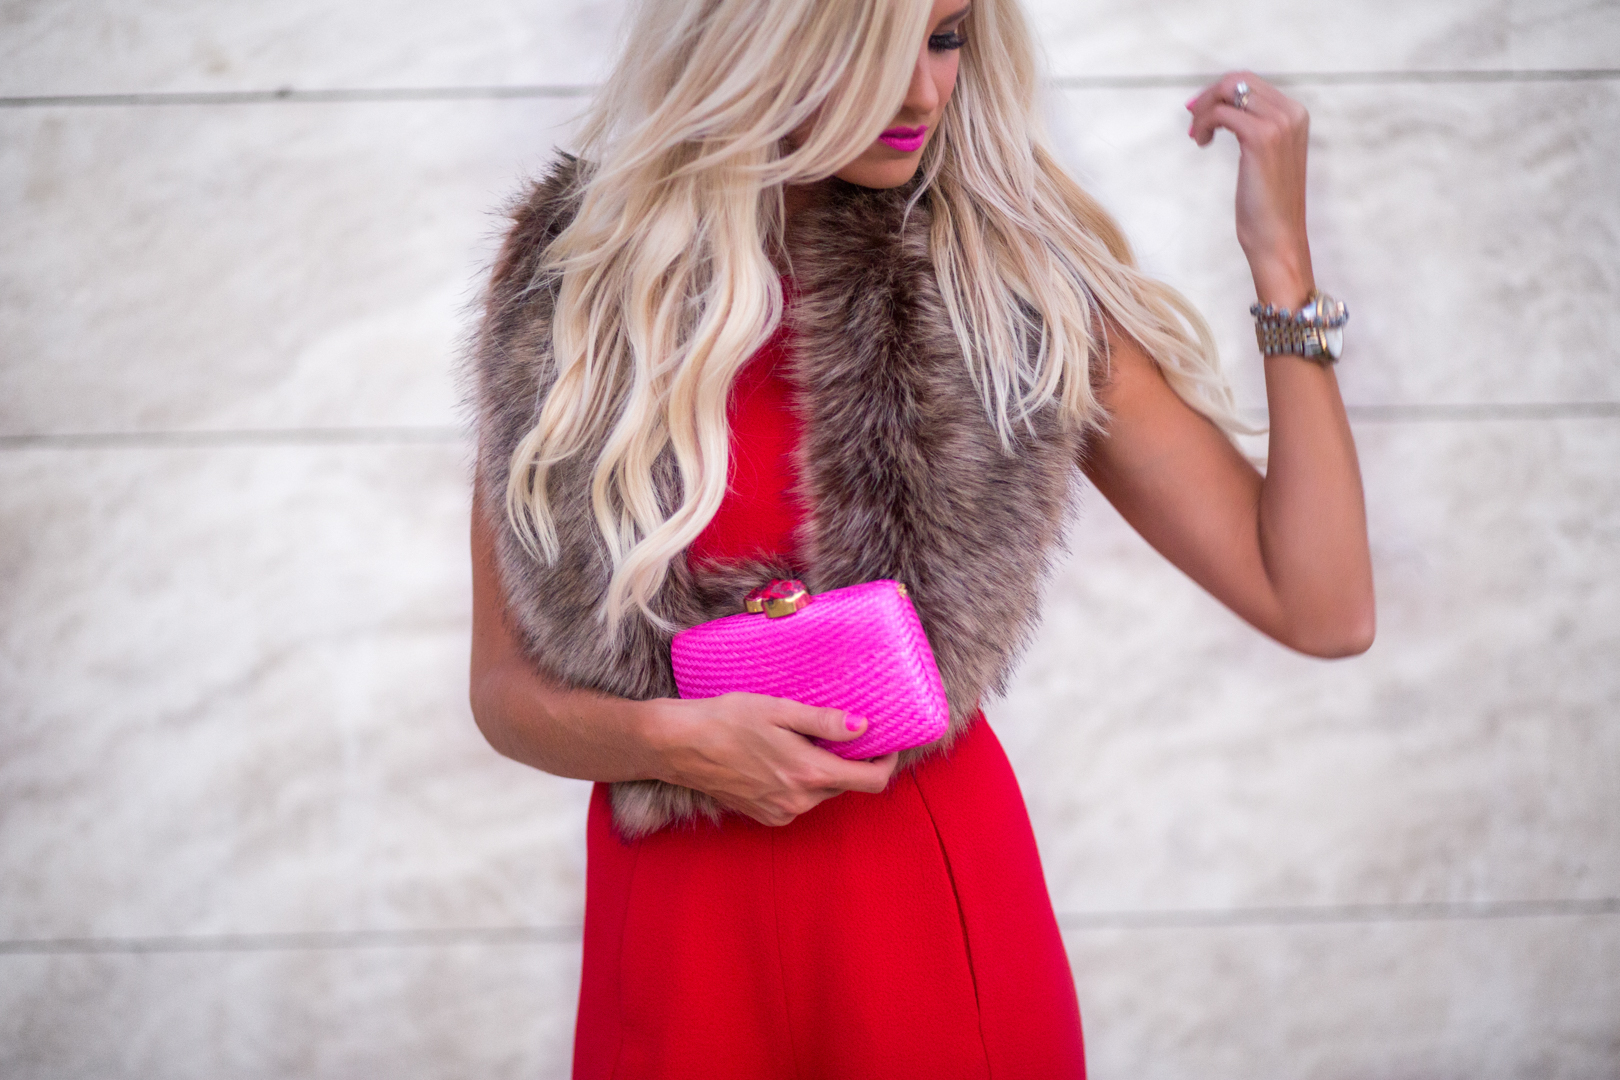 resized-red-20-1